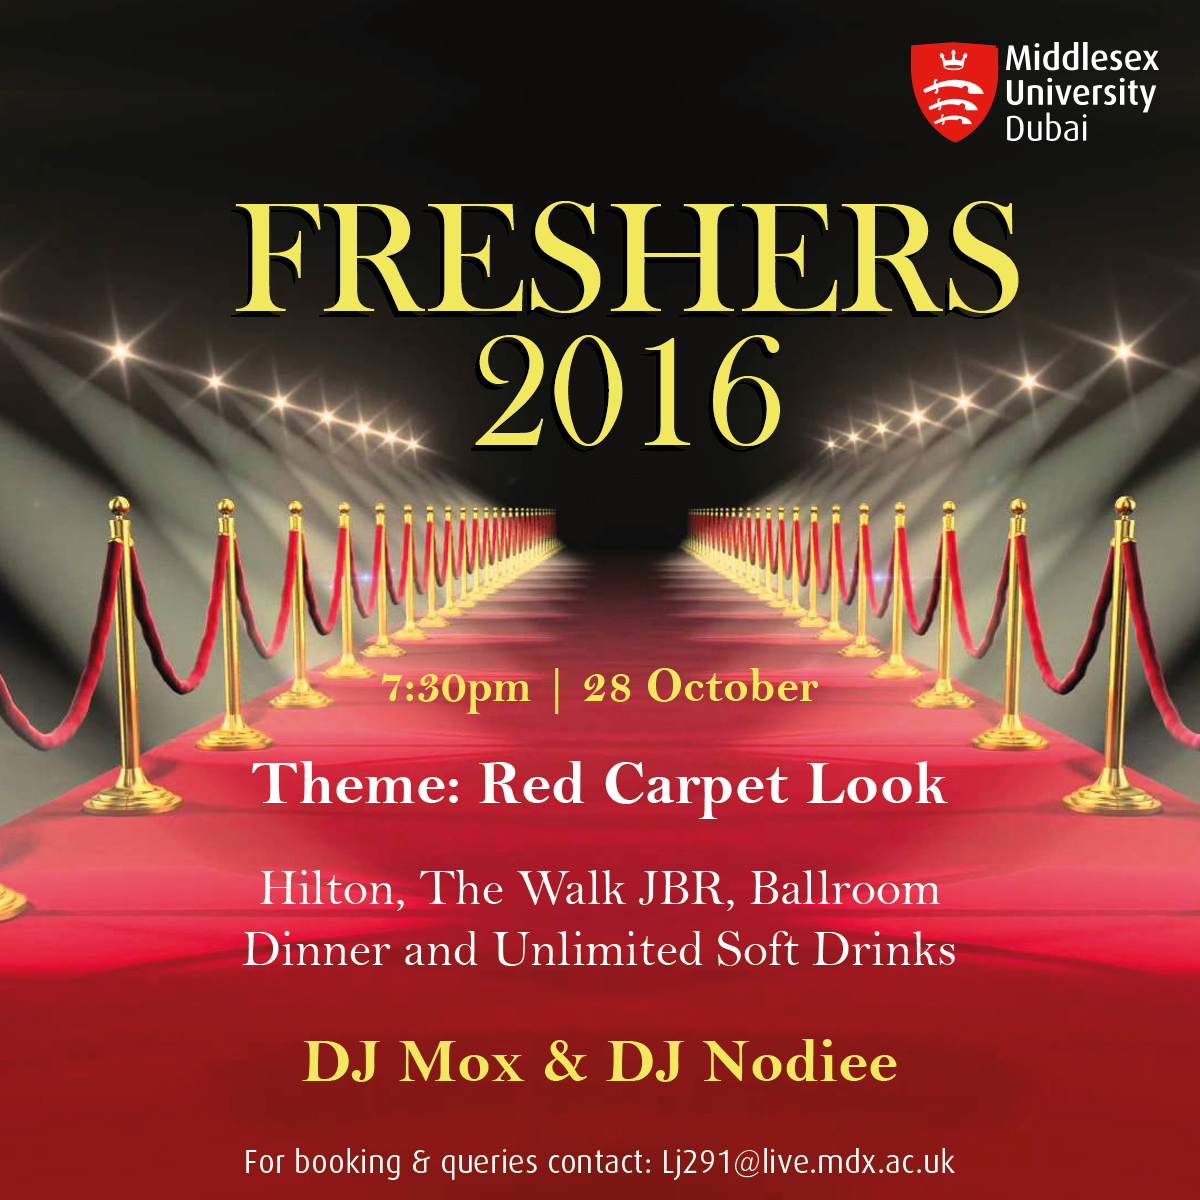 Freshers party 2016!